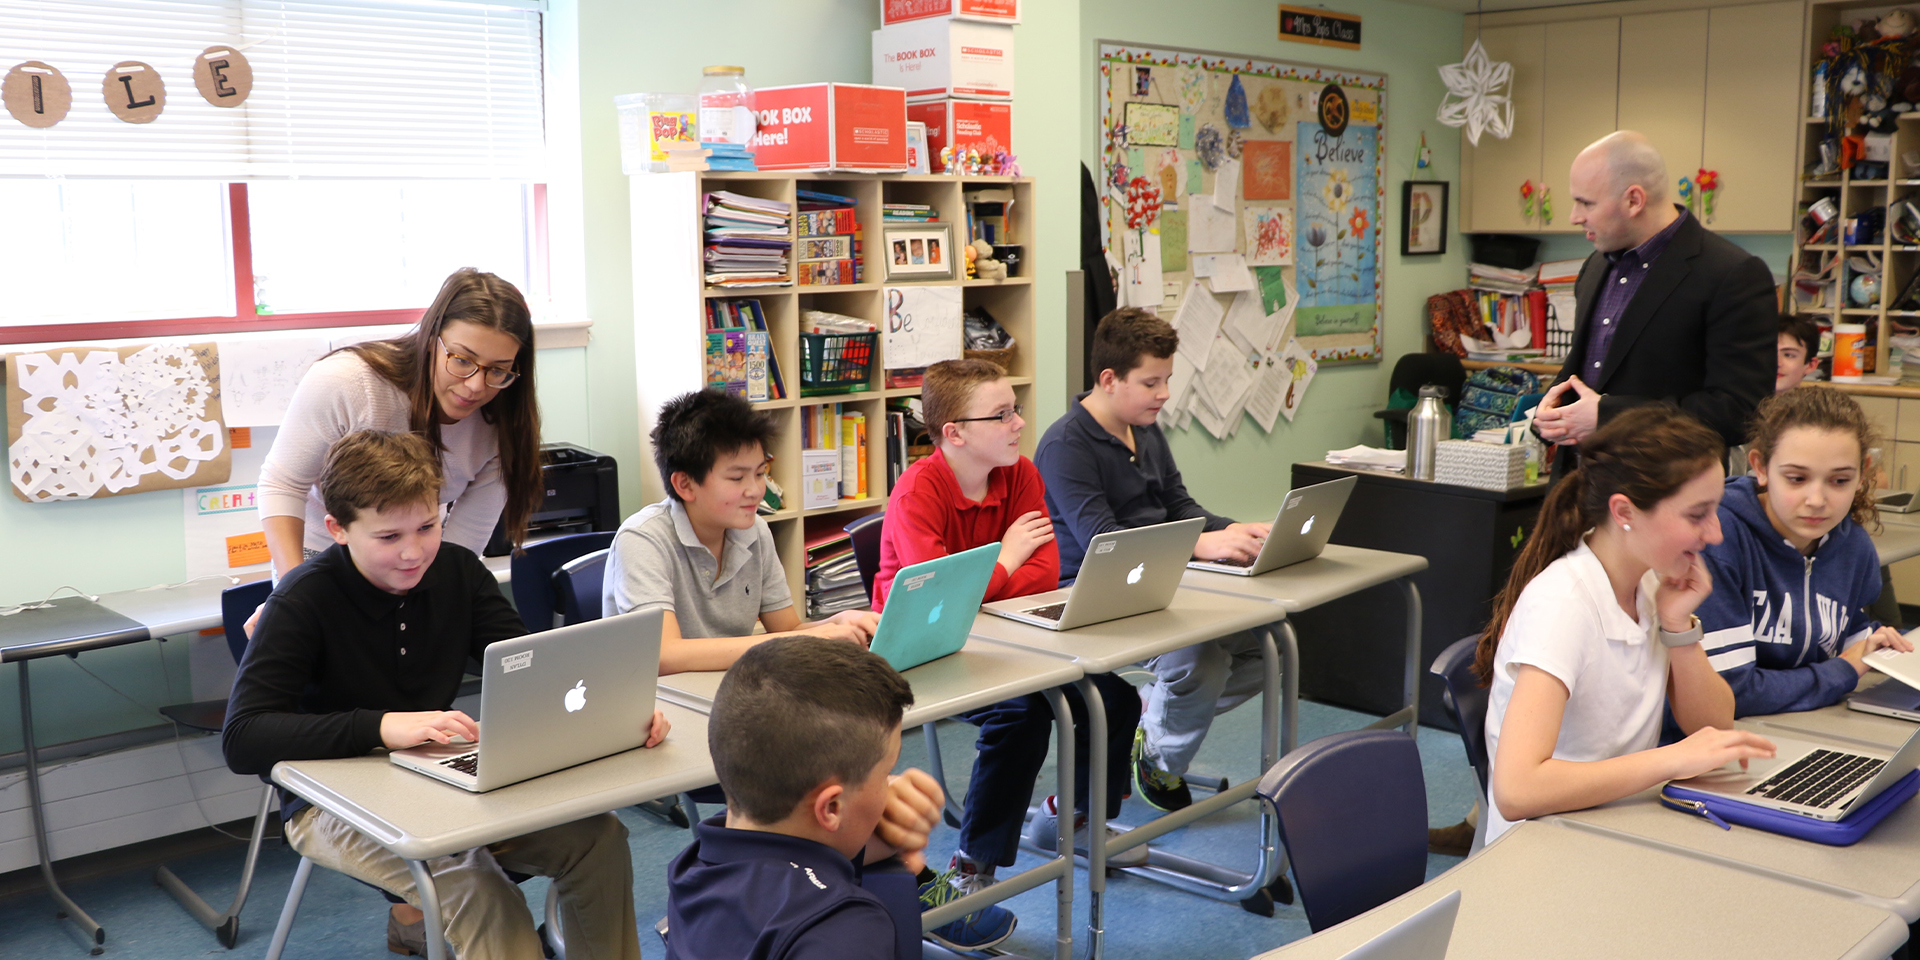 Two teachers help students with laptops in classroom